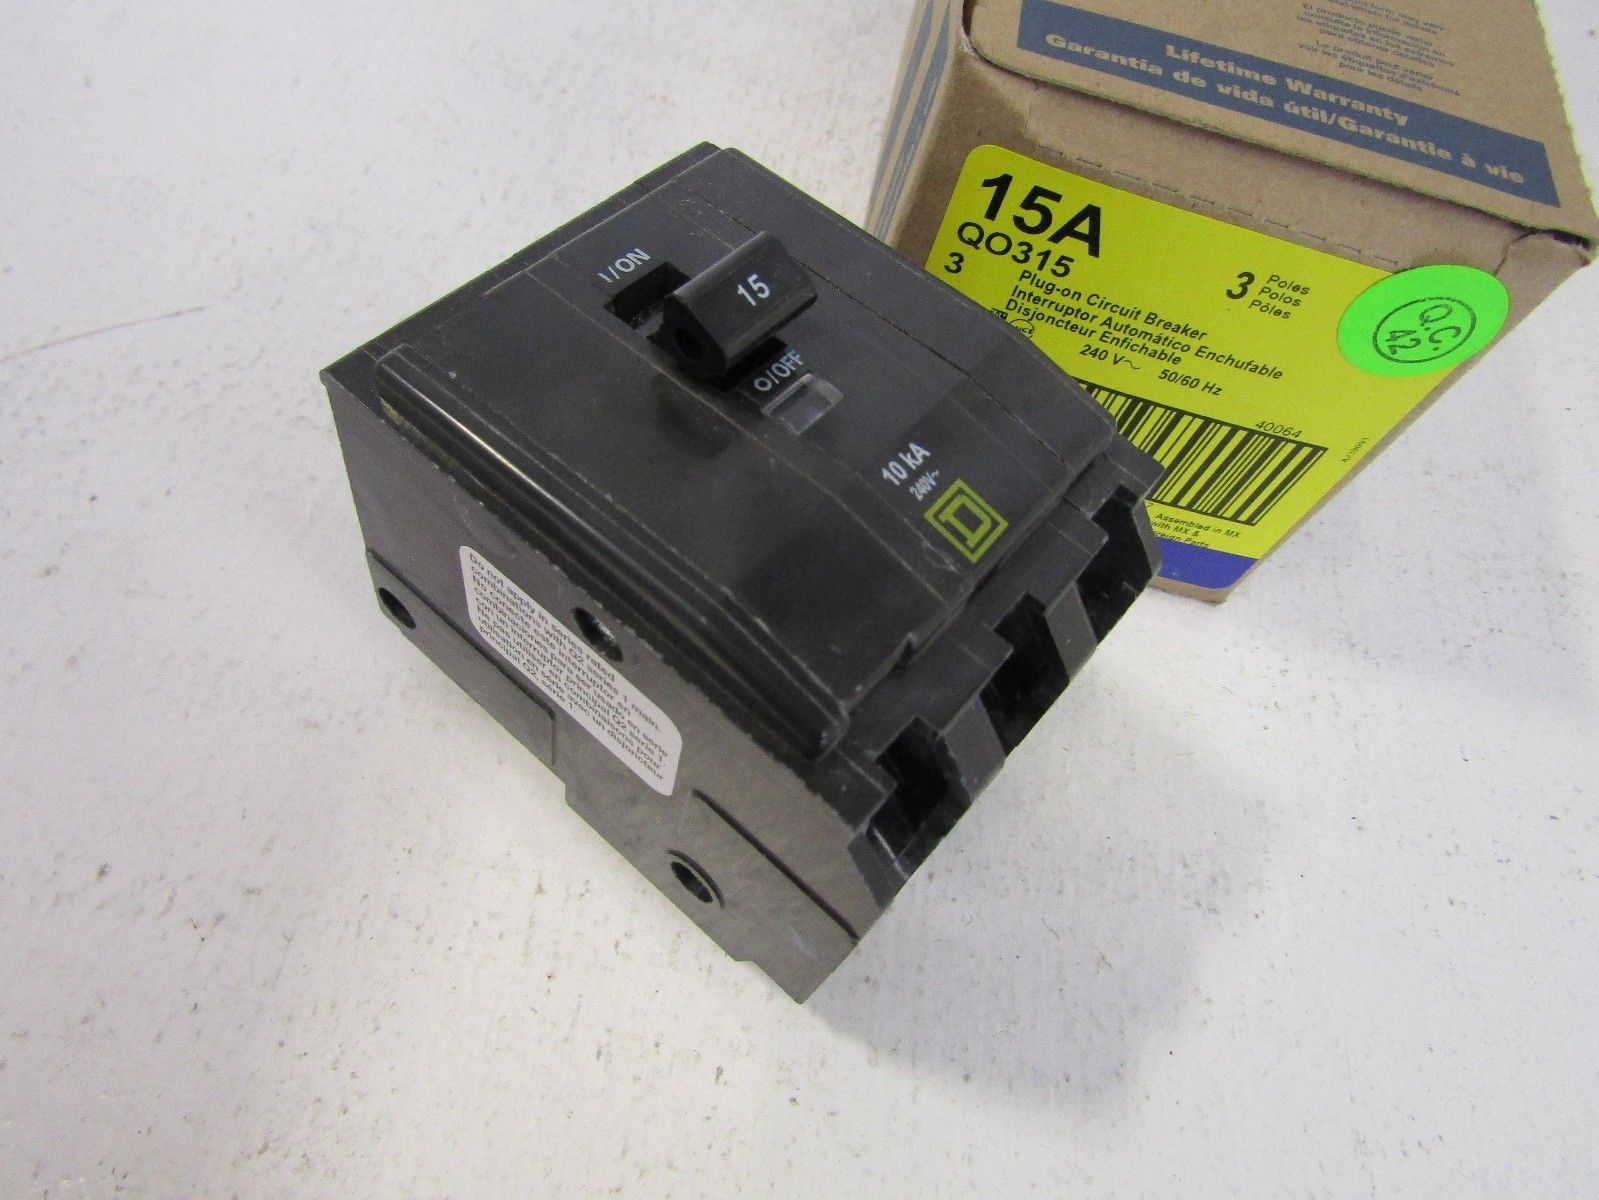 NEW SQUARE D QO315 3 POLE 15 AMP 240 VOLT CIRCUIT BREAKER FITS NQOD ...